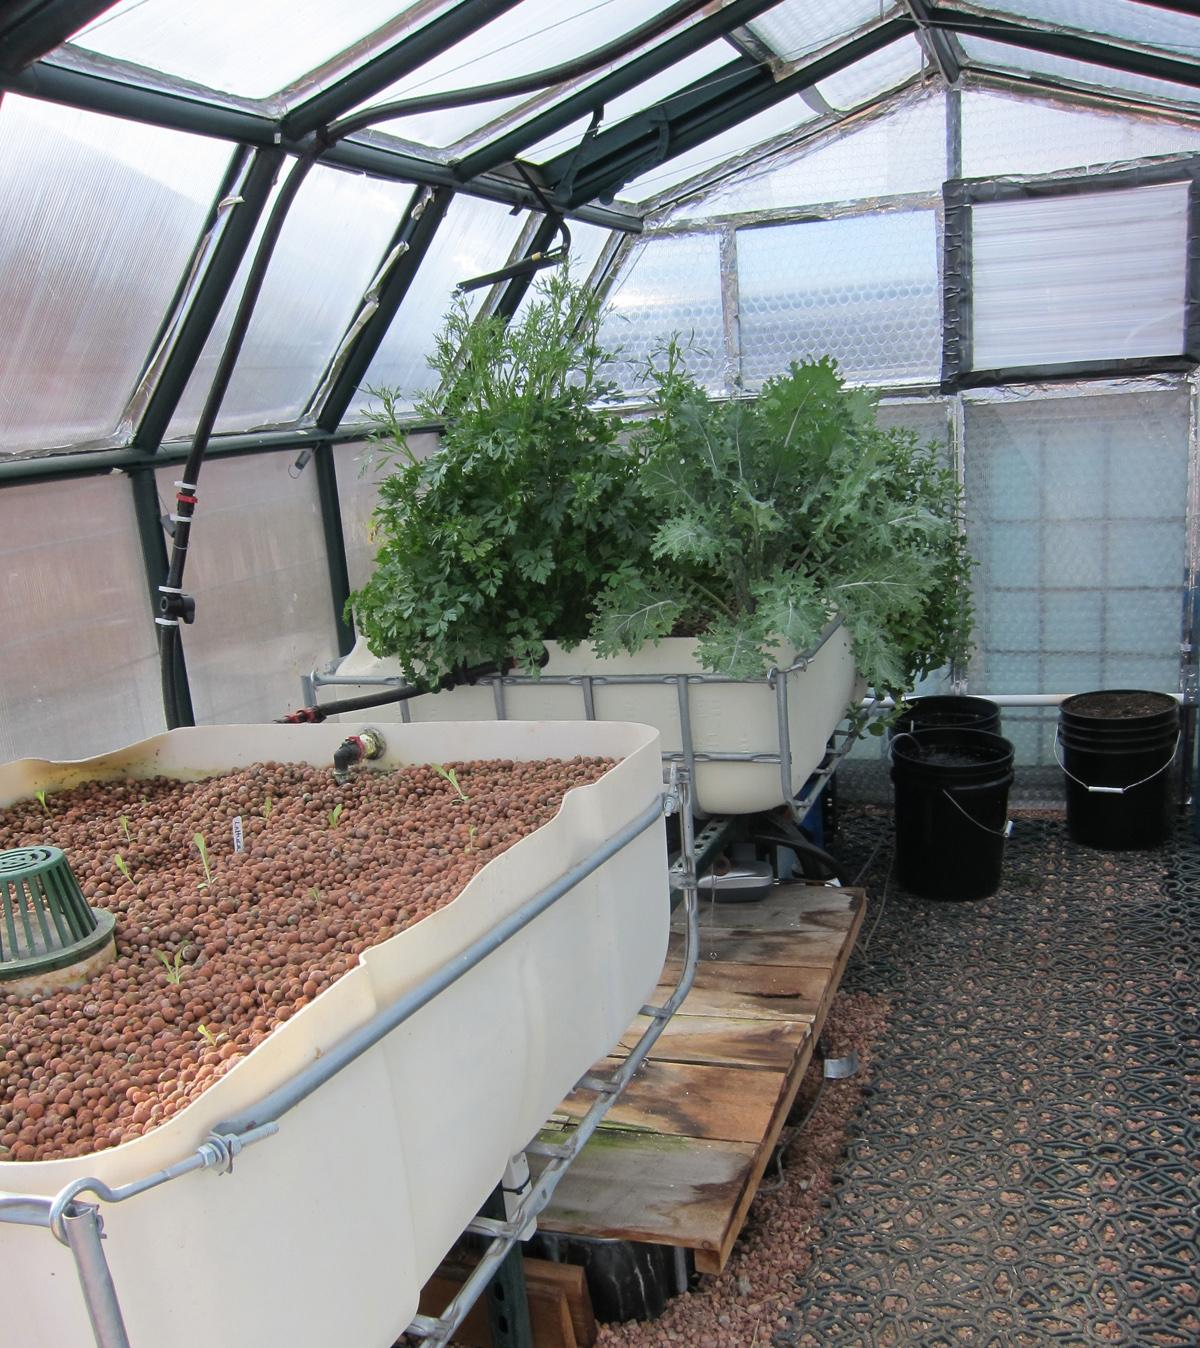 Urban agriculture in the pikes peak climate krcc for Koi aquaponics